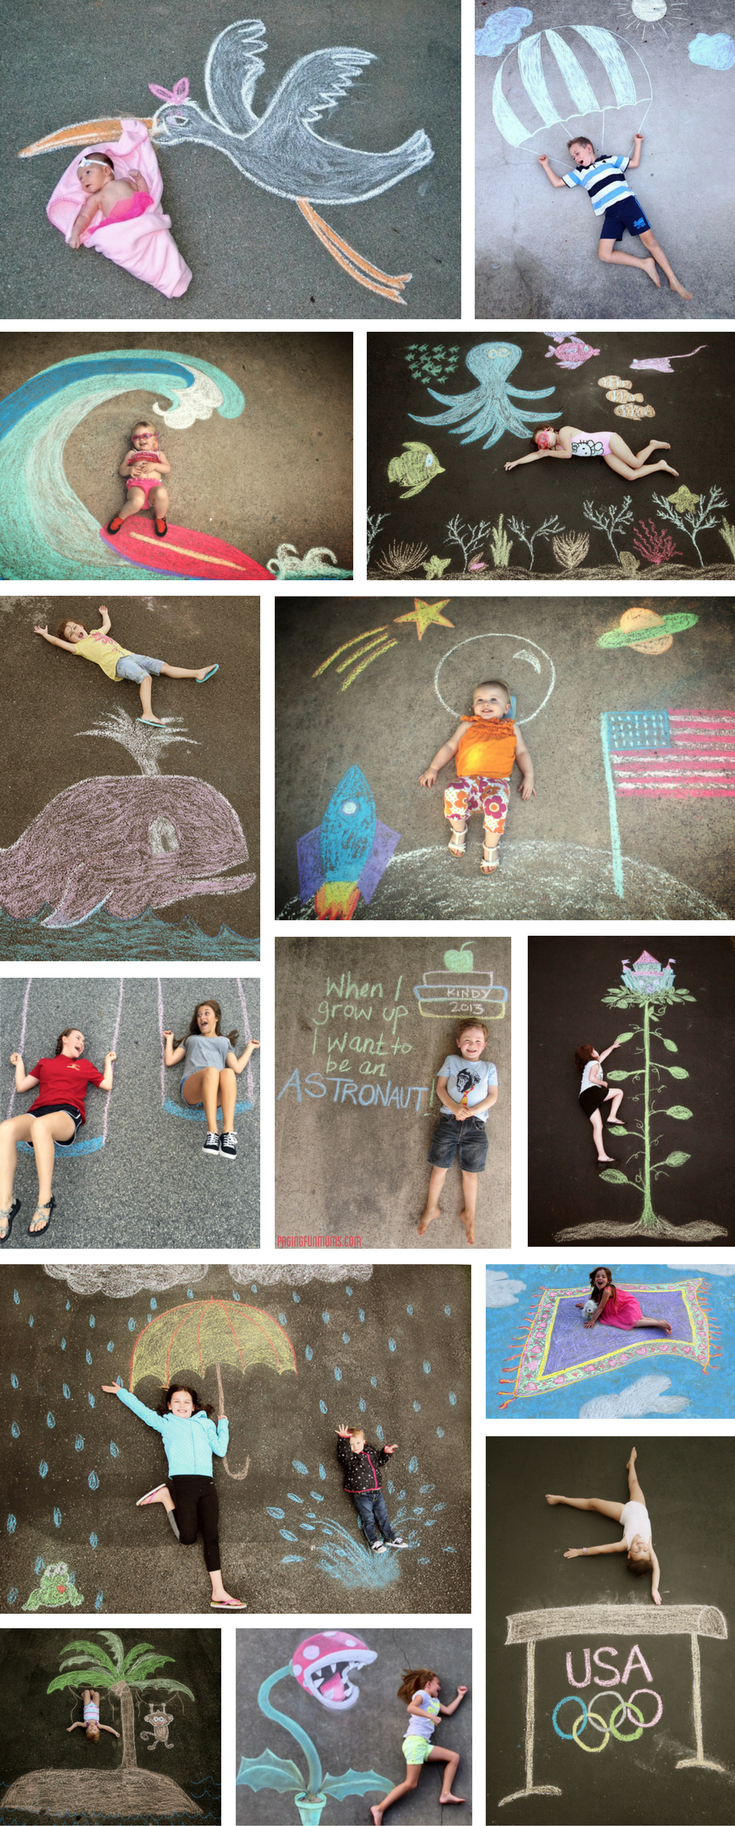 Photo of 101 Genius Sidewalk Chalk Ideas To Crush Summertime Boredom – what moms love